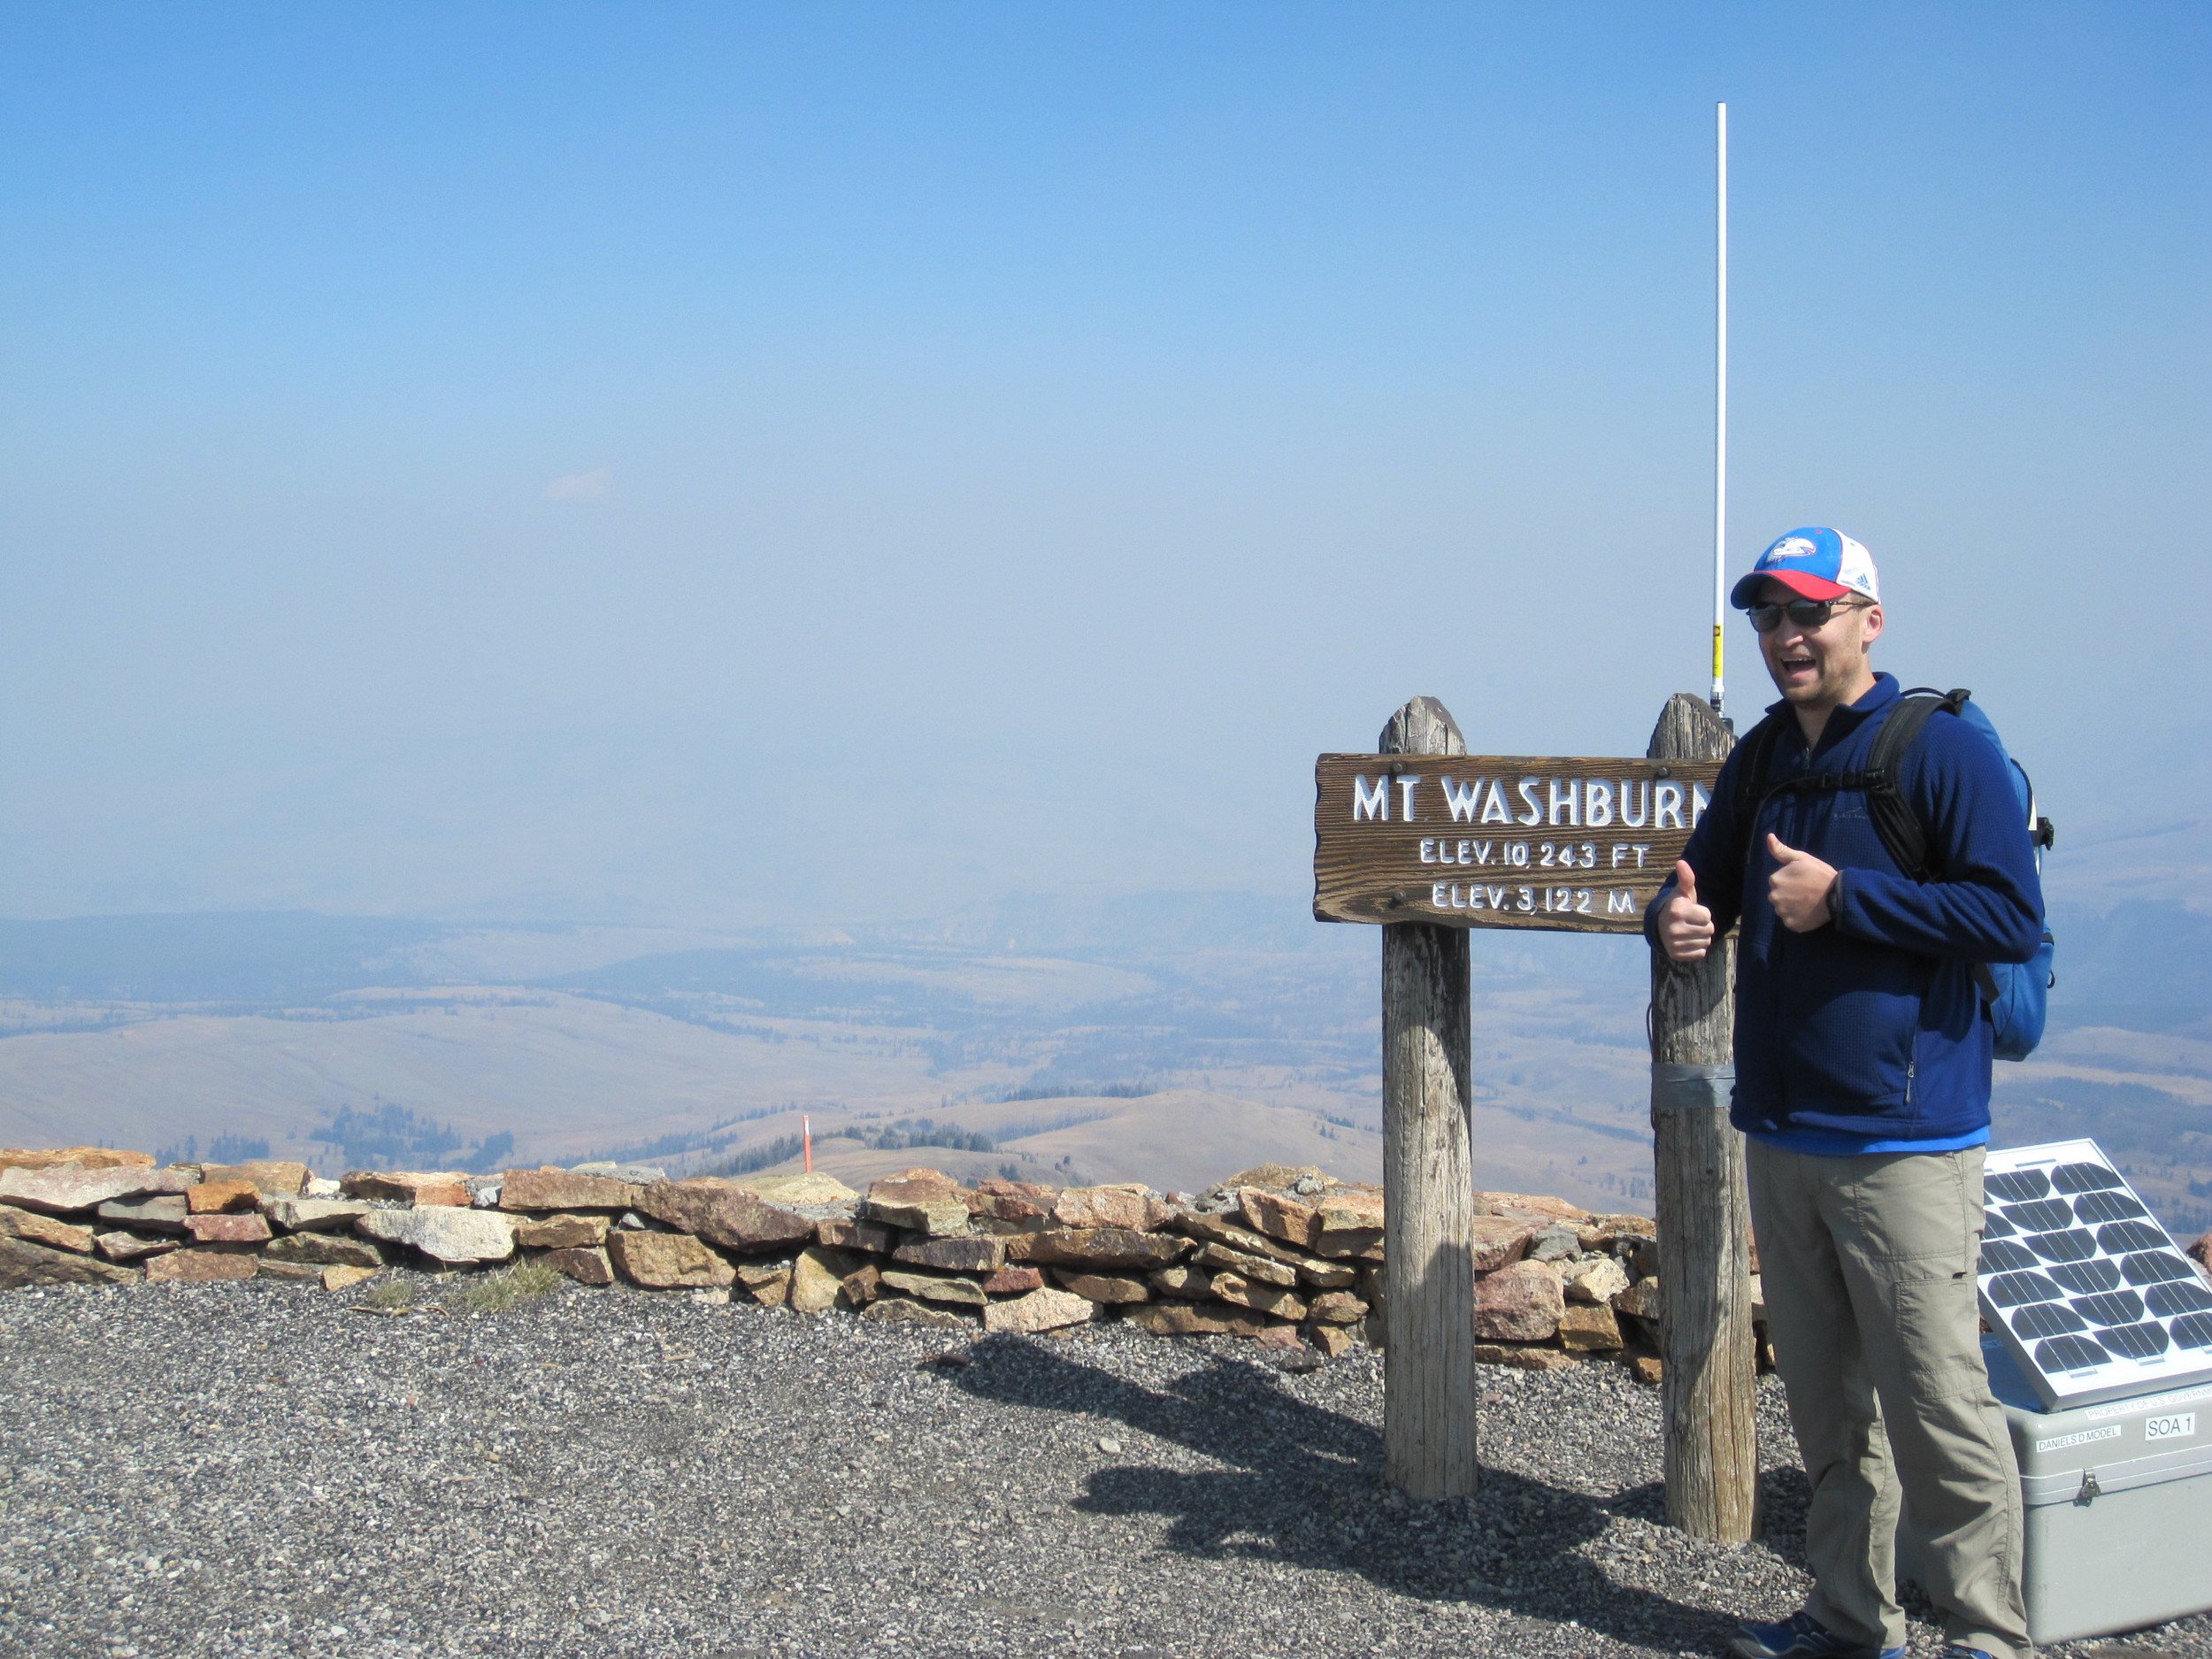 This is how Adam looked at the top of Mt. Washburn. Genuine happiness.